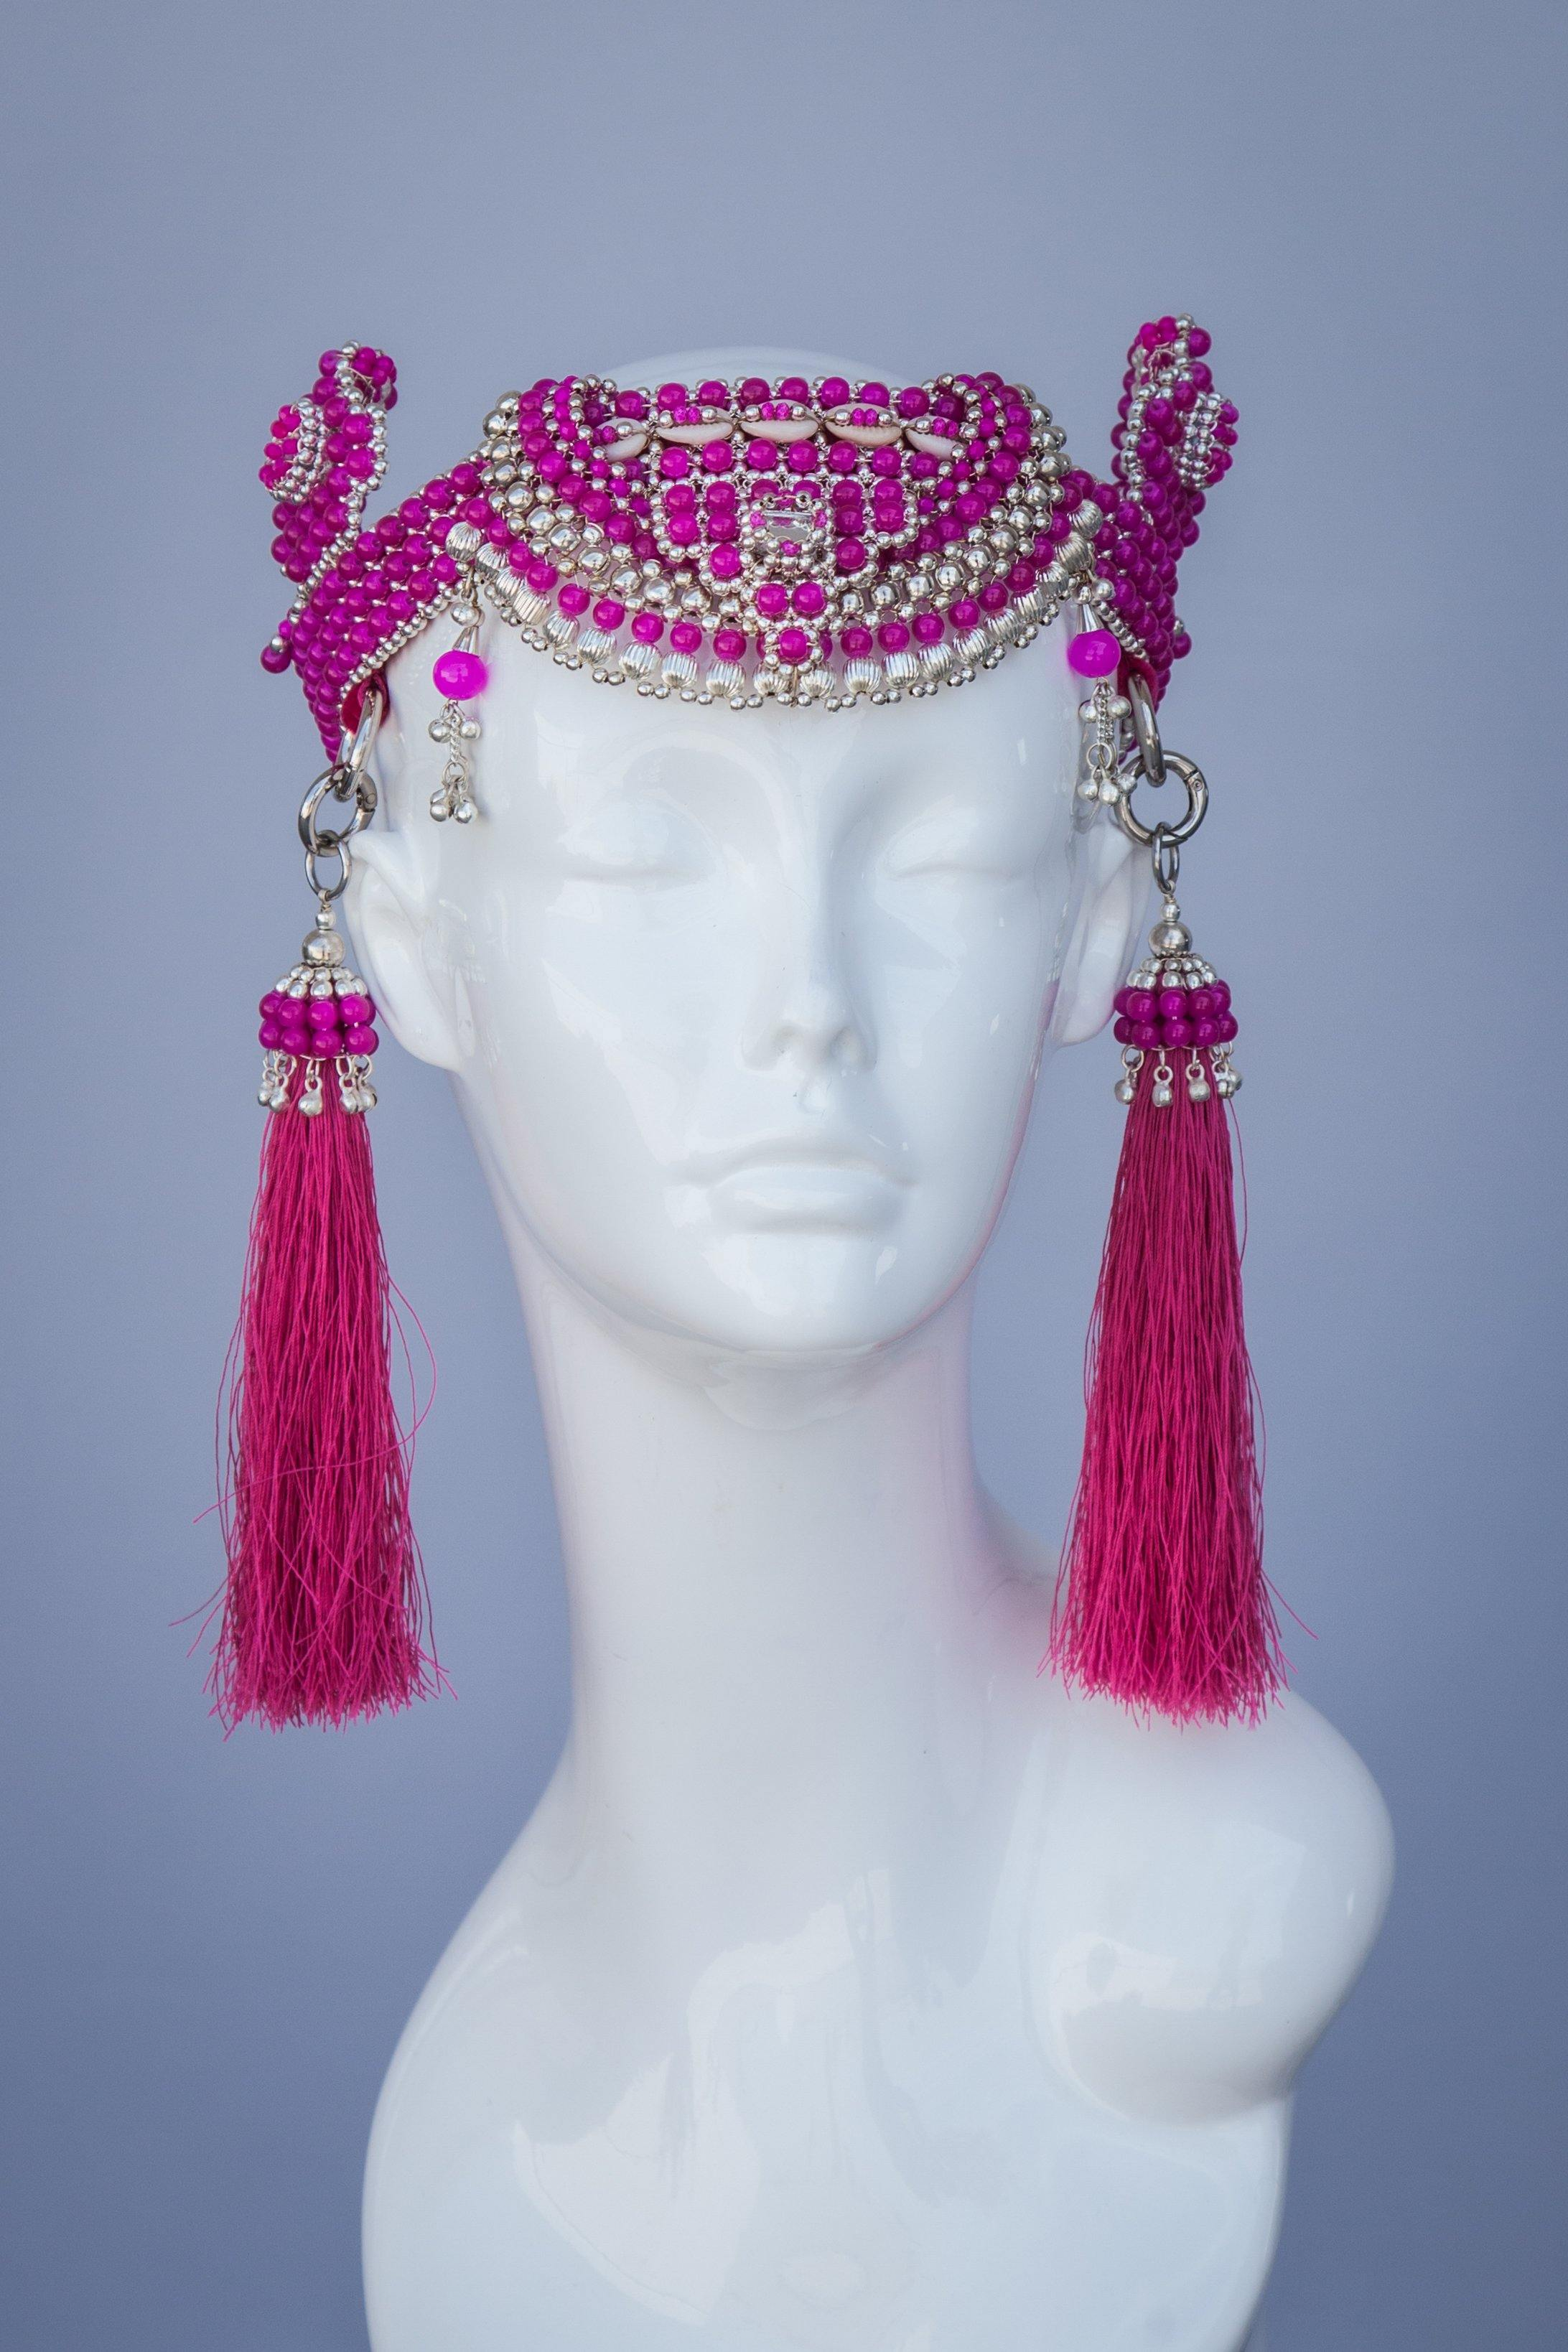 Anais Modular Crown with Tassels - Pink